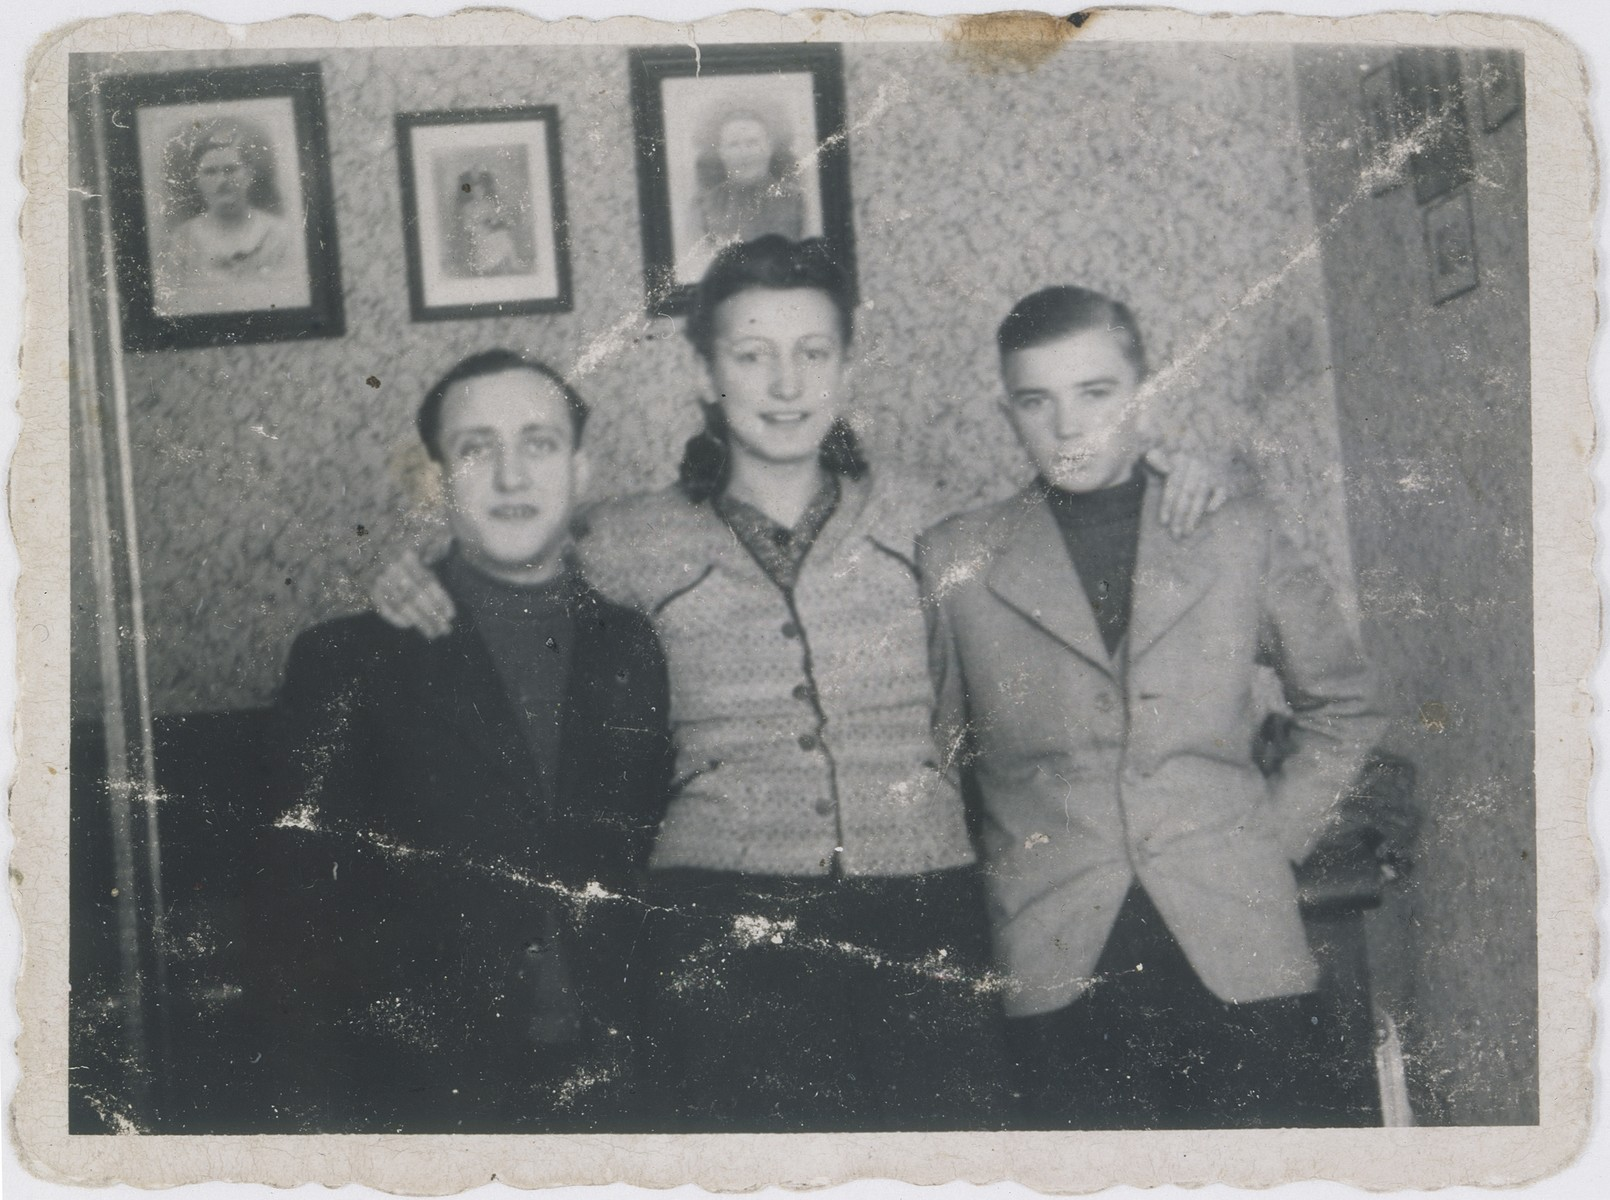 Jan Kostanski (right) poses with Fela Wierzbicka and her husband Szmulek in the Warsaw ghetto.  Fela was eight months pregnant in this photo.  She was killed shortly thereafter by the Germans and her husband, Szmulek, went mad upon hearing the news.